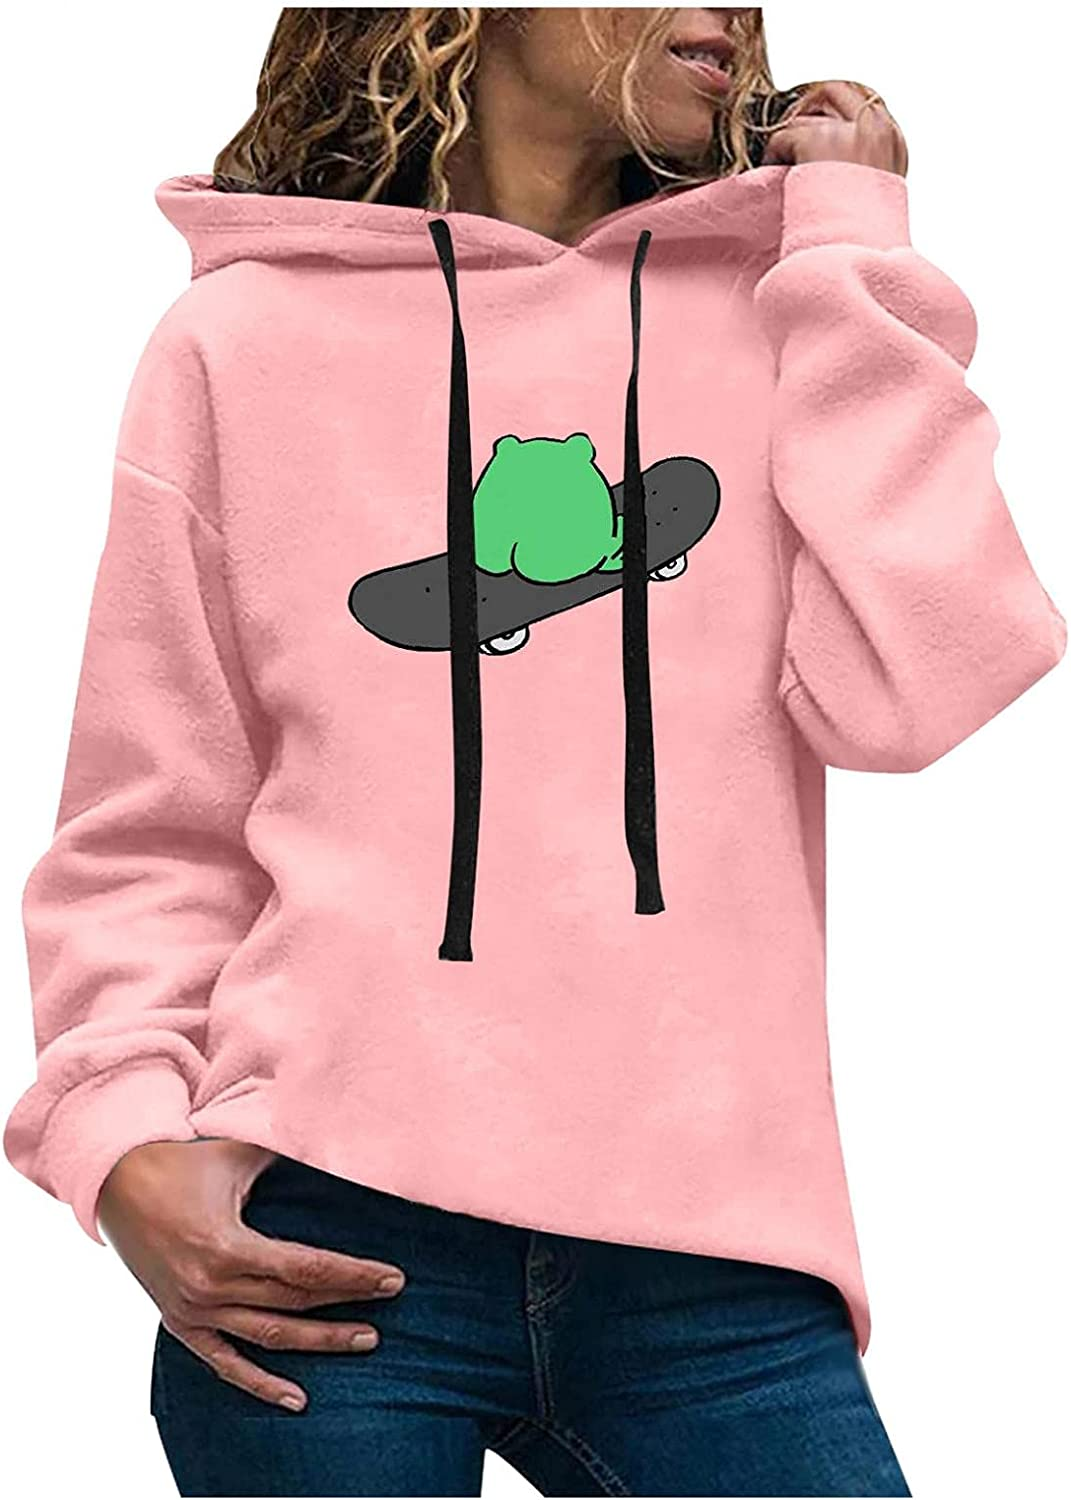 Outlet ☆ Free Shipping Qisemi Wholesale Hooded Sweatshirts for Women Teen Graphic Girls Swea Frog